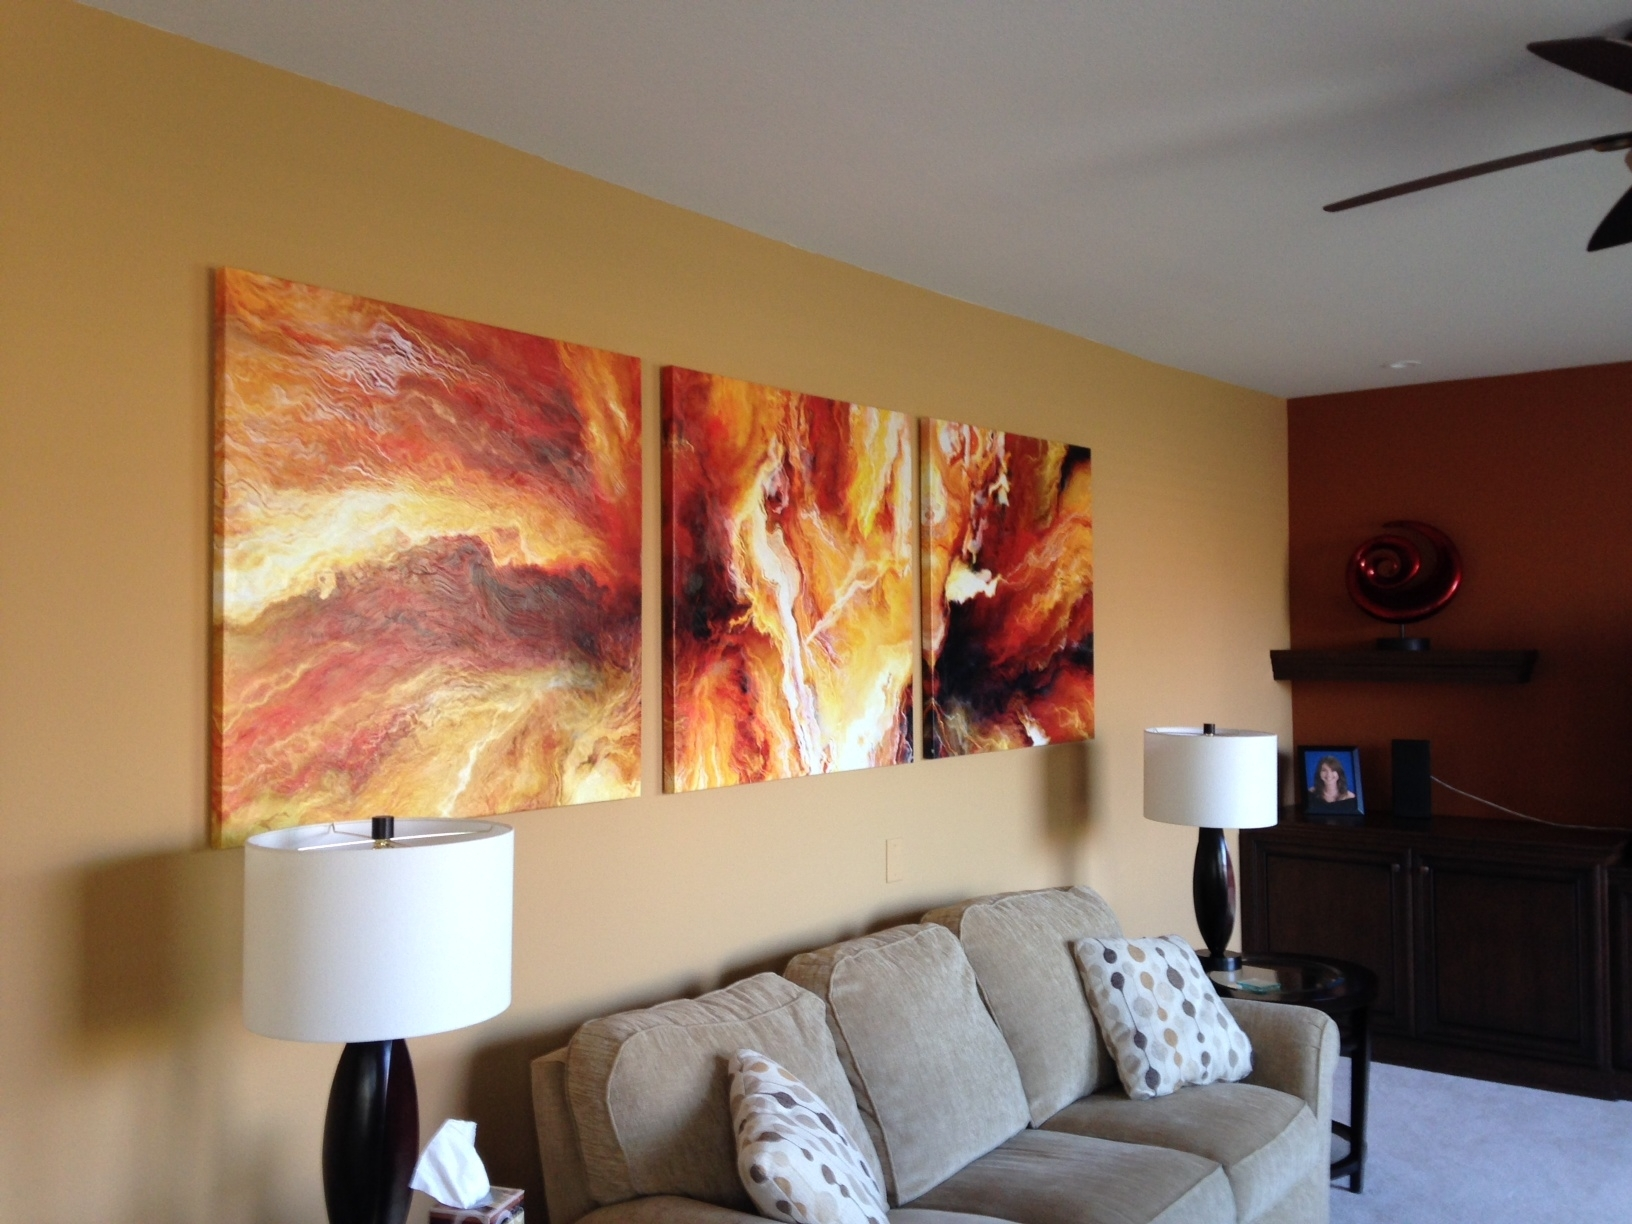 33 Vibrant Oversized Wall Art For Living Room Decorations Diy With Large Framed Canvas Wall Art (Photo 14 of 20)